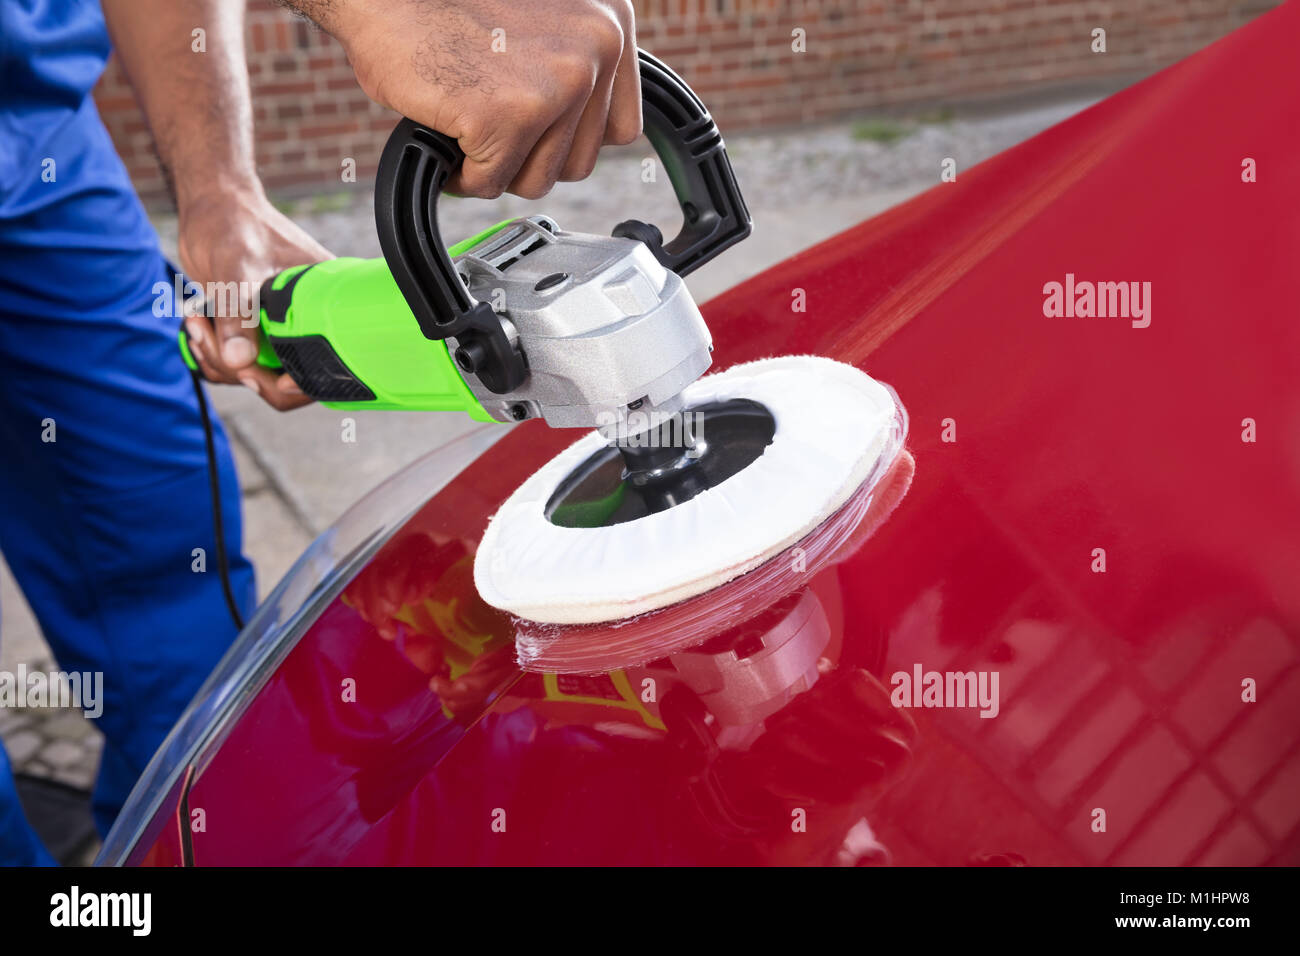 Close-up Of Person Hands Polishing Car With Orbital Polisher - Stock Image